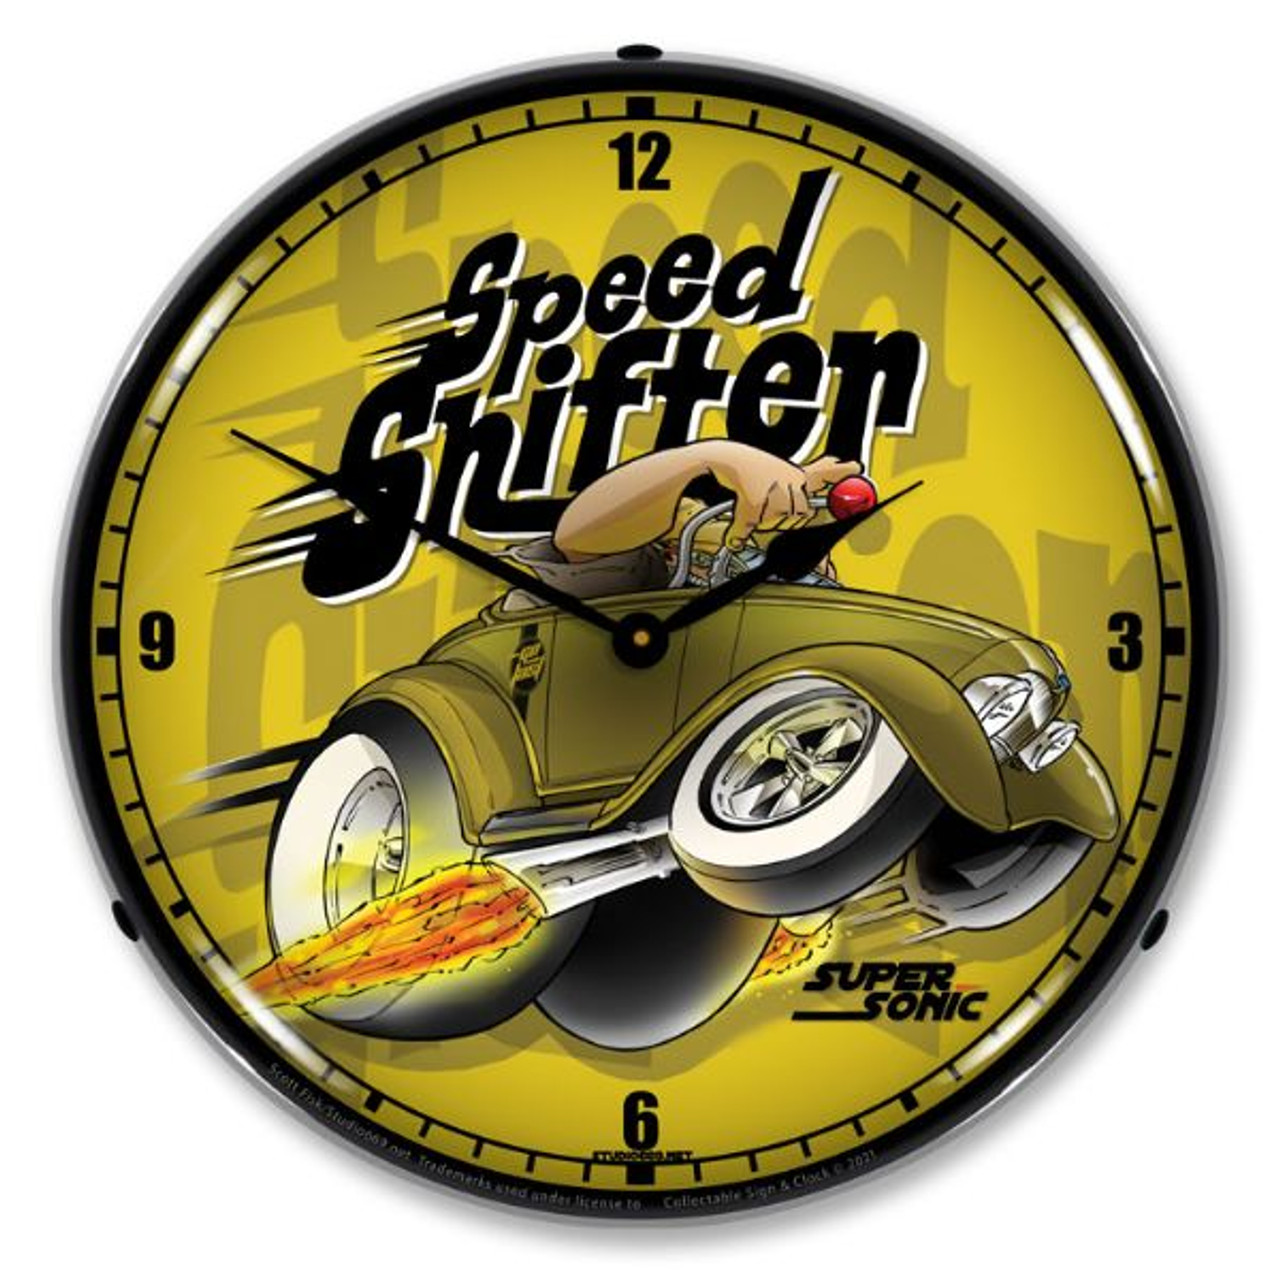 Speed Shifter Lighted Wall Clock 14 x 14 Inches